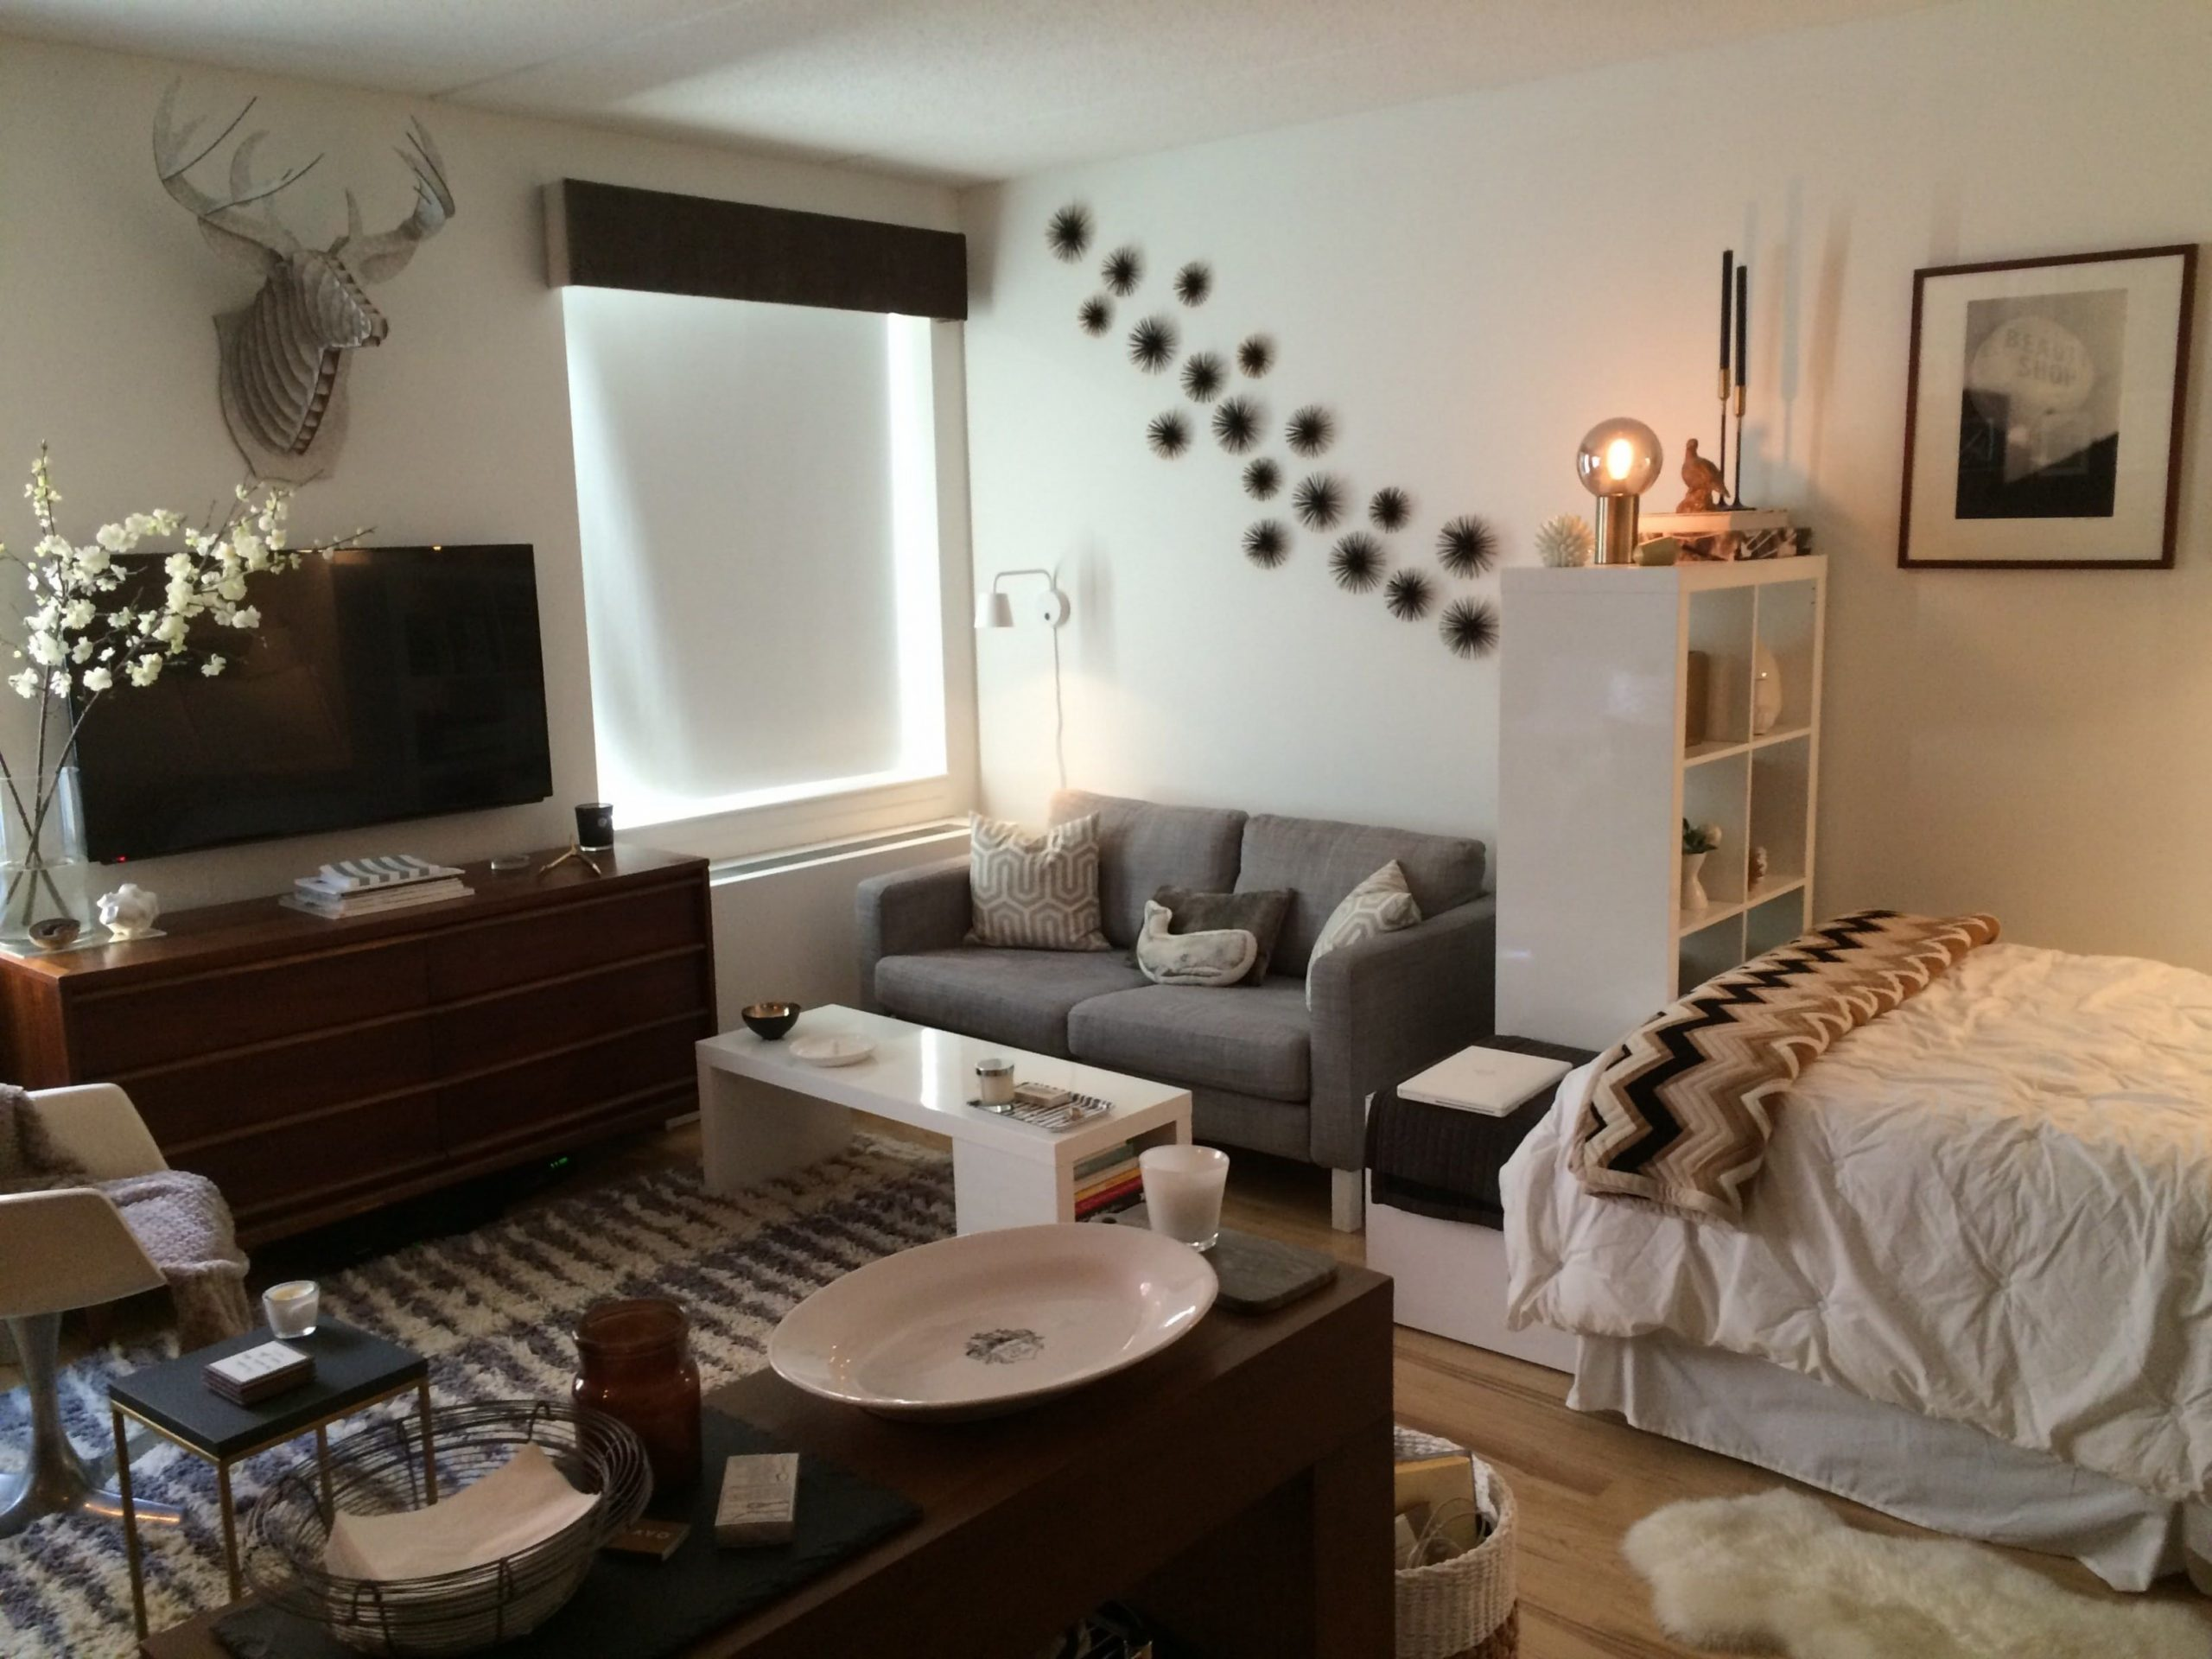 12 Studio Apartment Layouts That Just Plain Work  Apartment layout  - Small Apartment Decorating Ideas Ikea